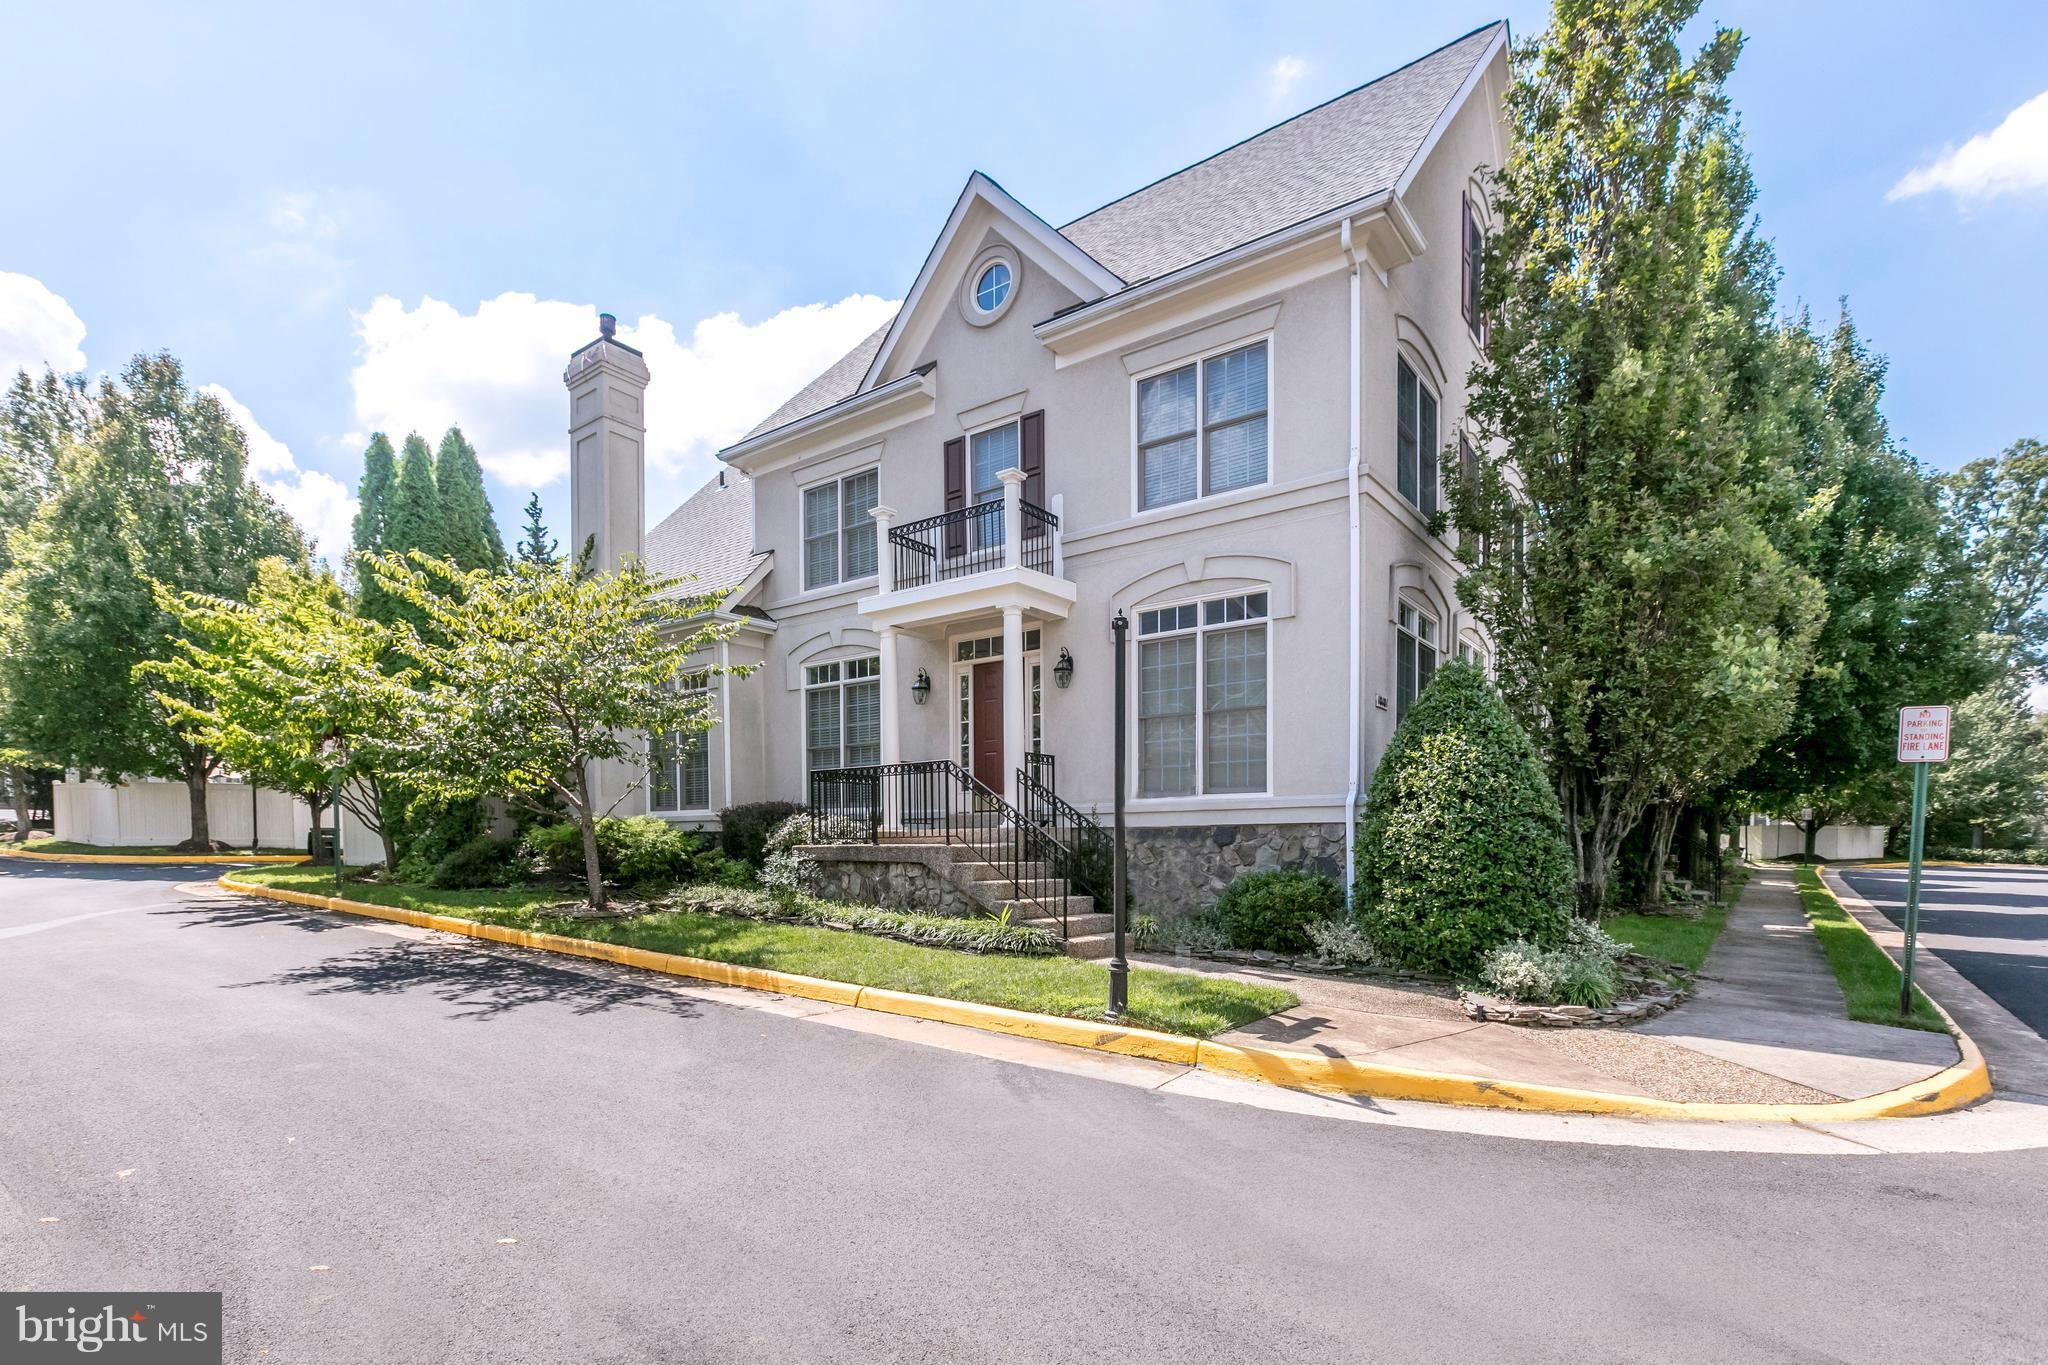 This planned community of luxury homes built on historic land once owned by Lord Fairfax is located a few blocks from Old Town Fairfax. A perfect blend of old world charm + contemporary living makes this one of the most desirable communities in Fairfax County.  Beautifully landscaped grounds, preserved common areas, walking trails, community pool. Connector bus at entrance. Minutes to 66 & Mosaic.